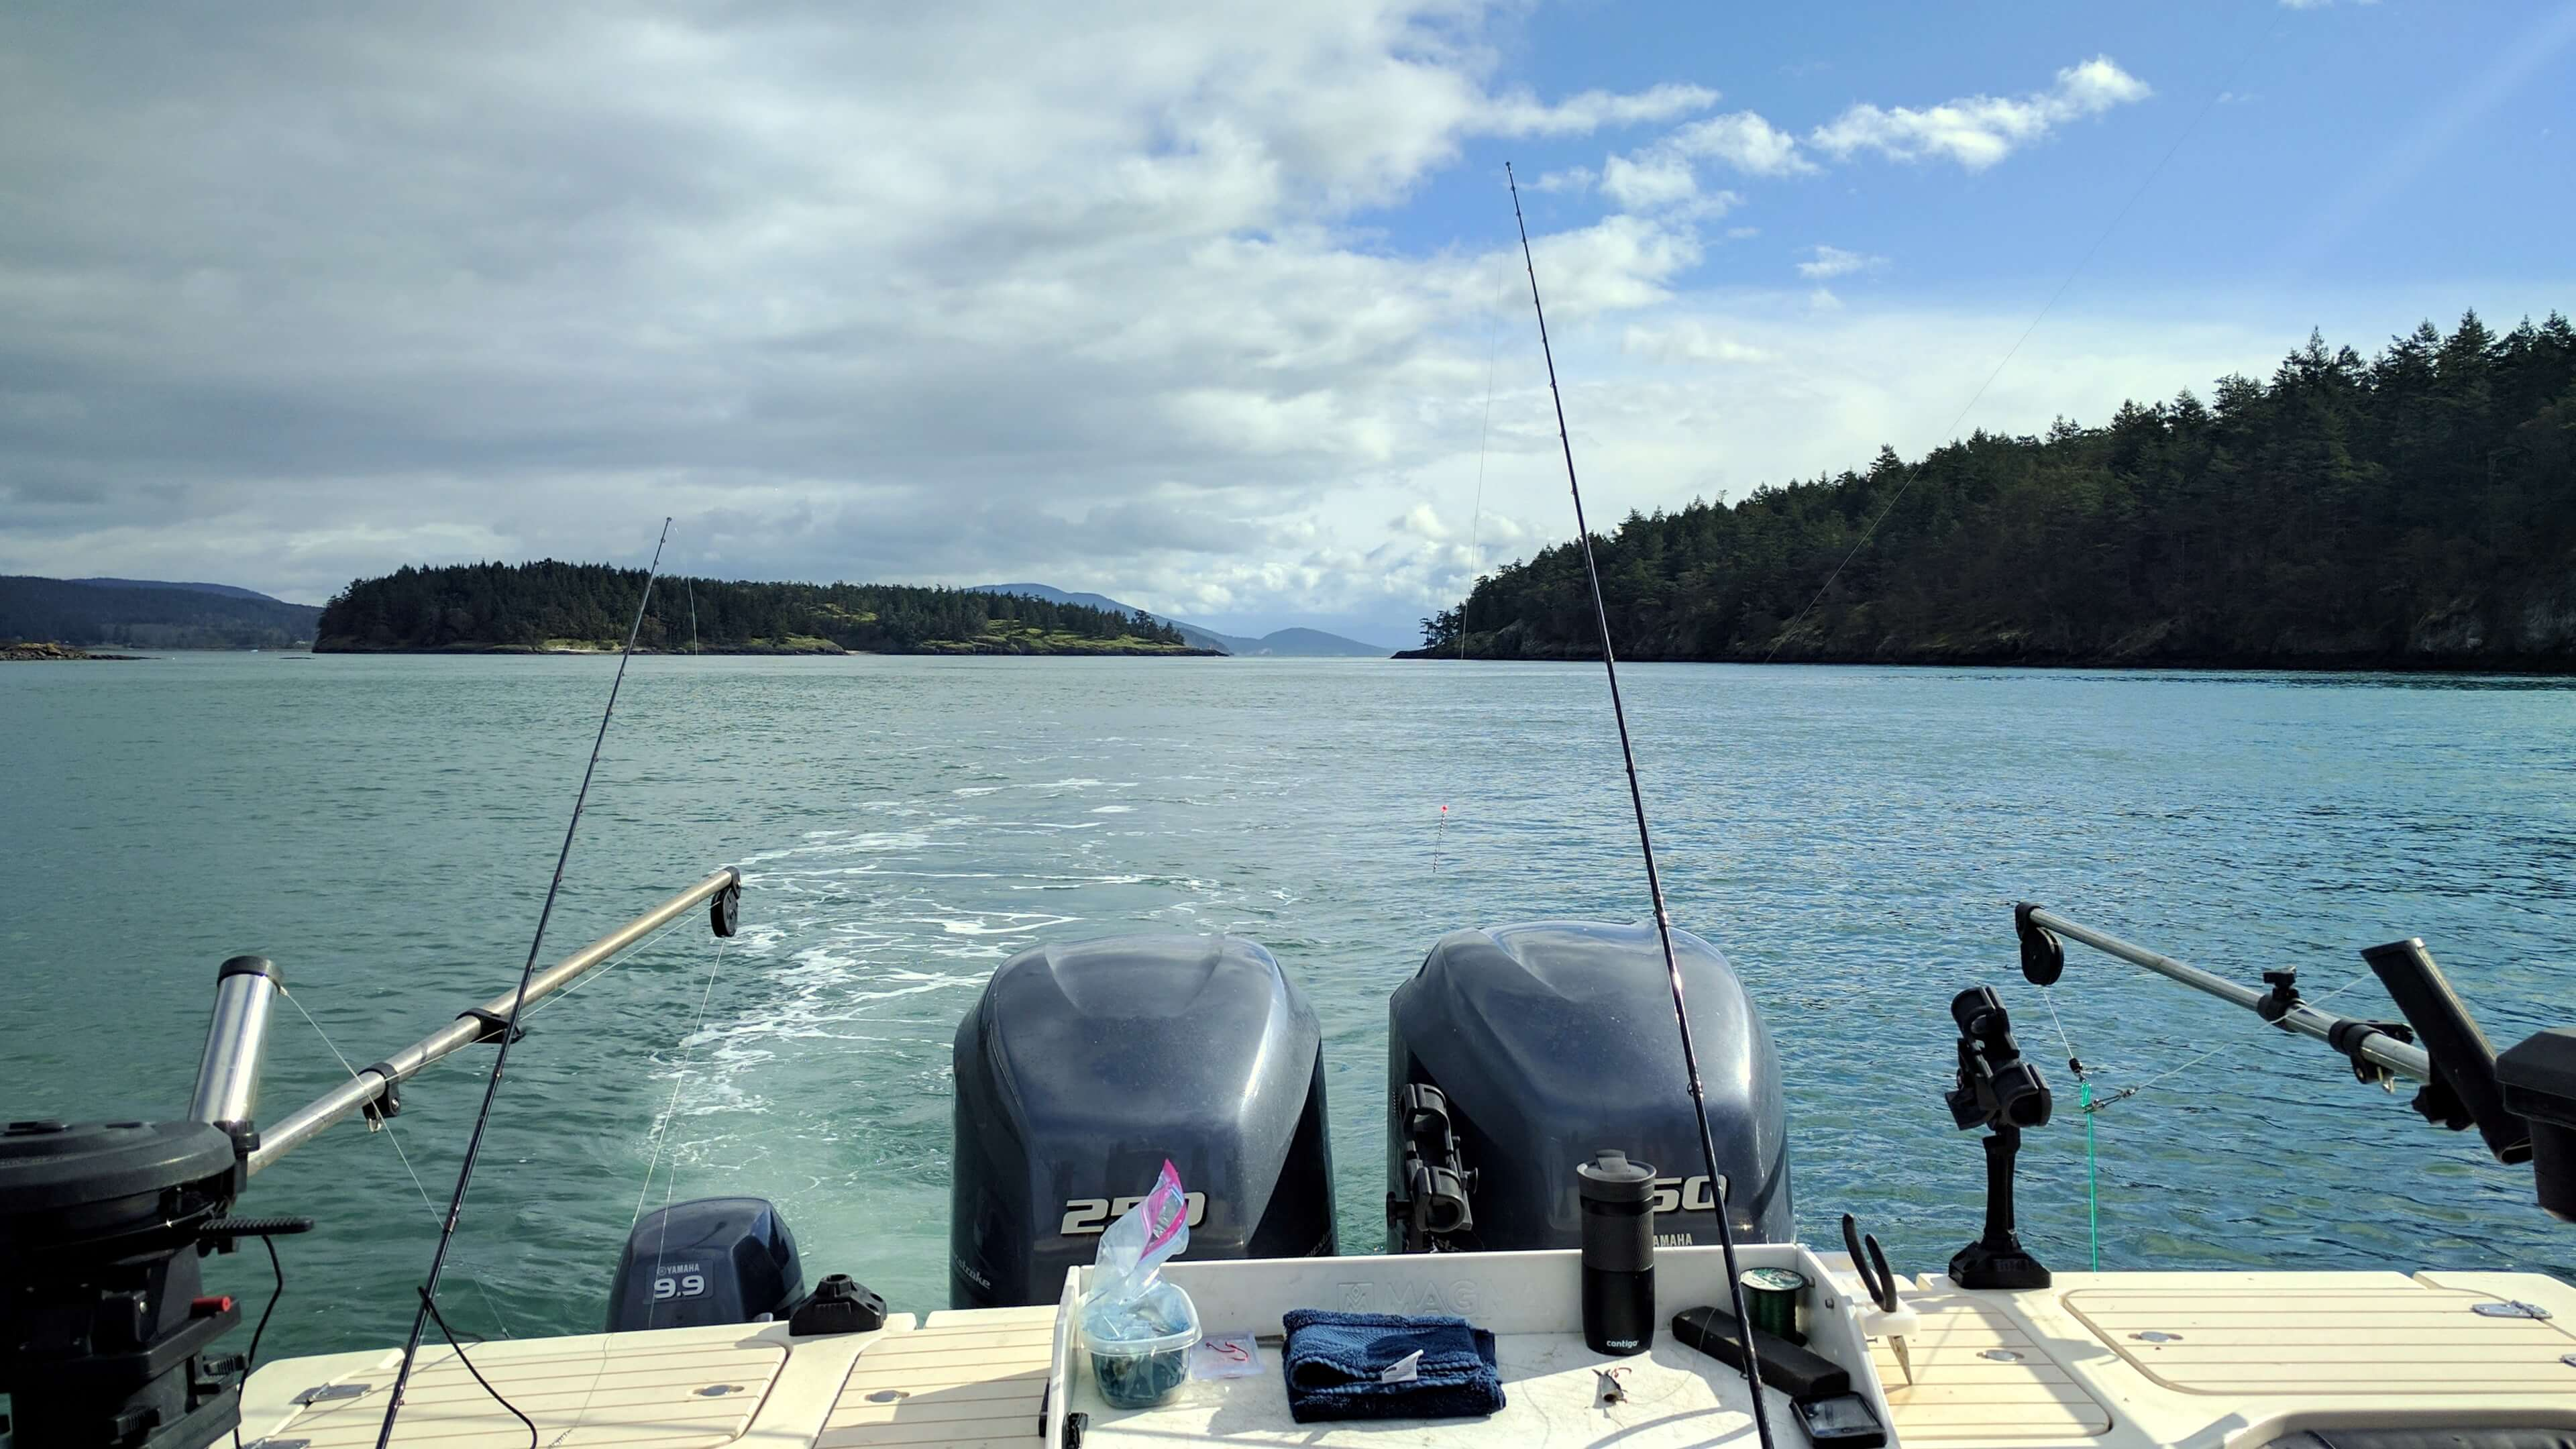 Salmon fishing in the san juan islands live recklessly for Fishing san juan islands